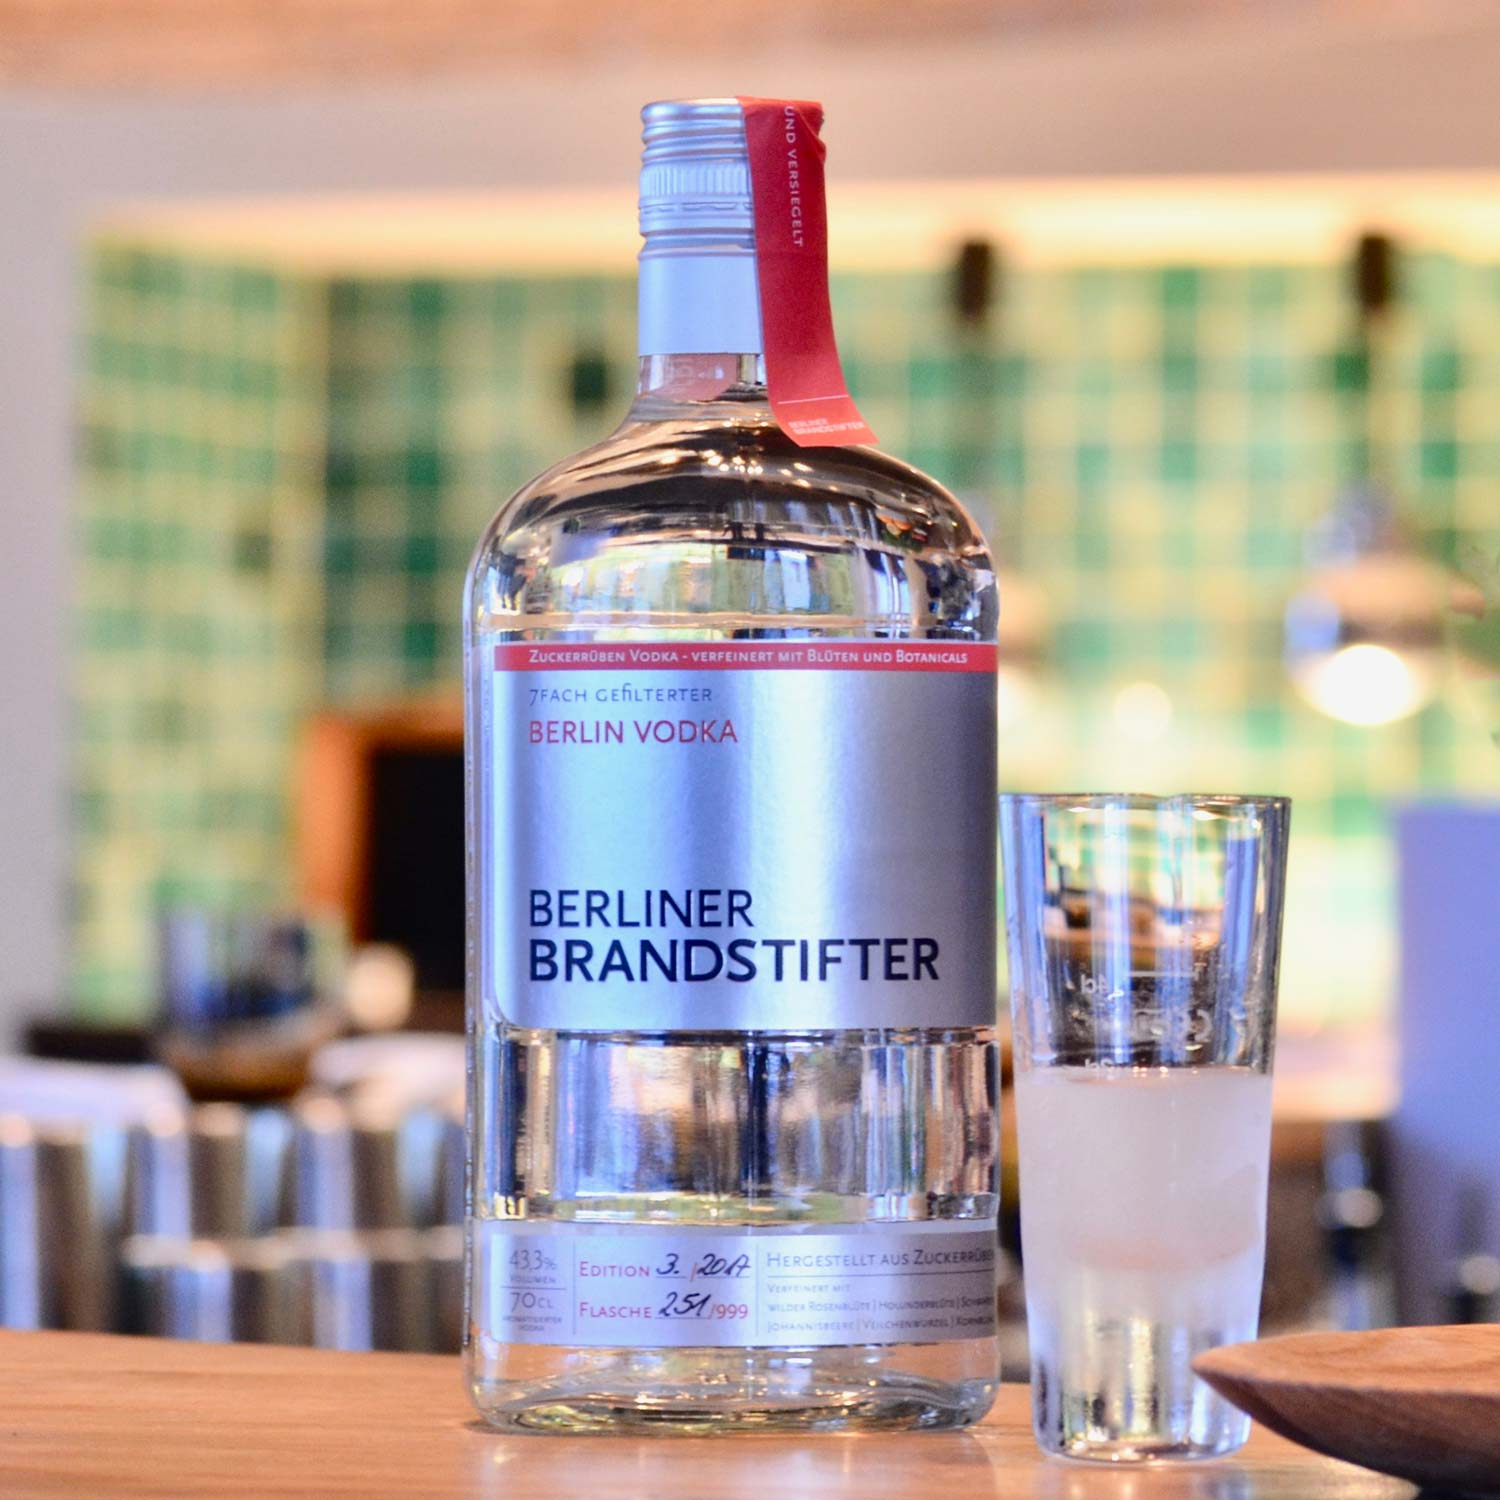 Berliner Brandstifter Berlin Vodka 0,7l (43,3%)